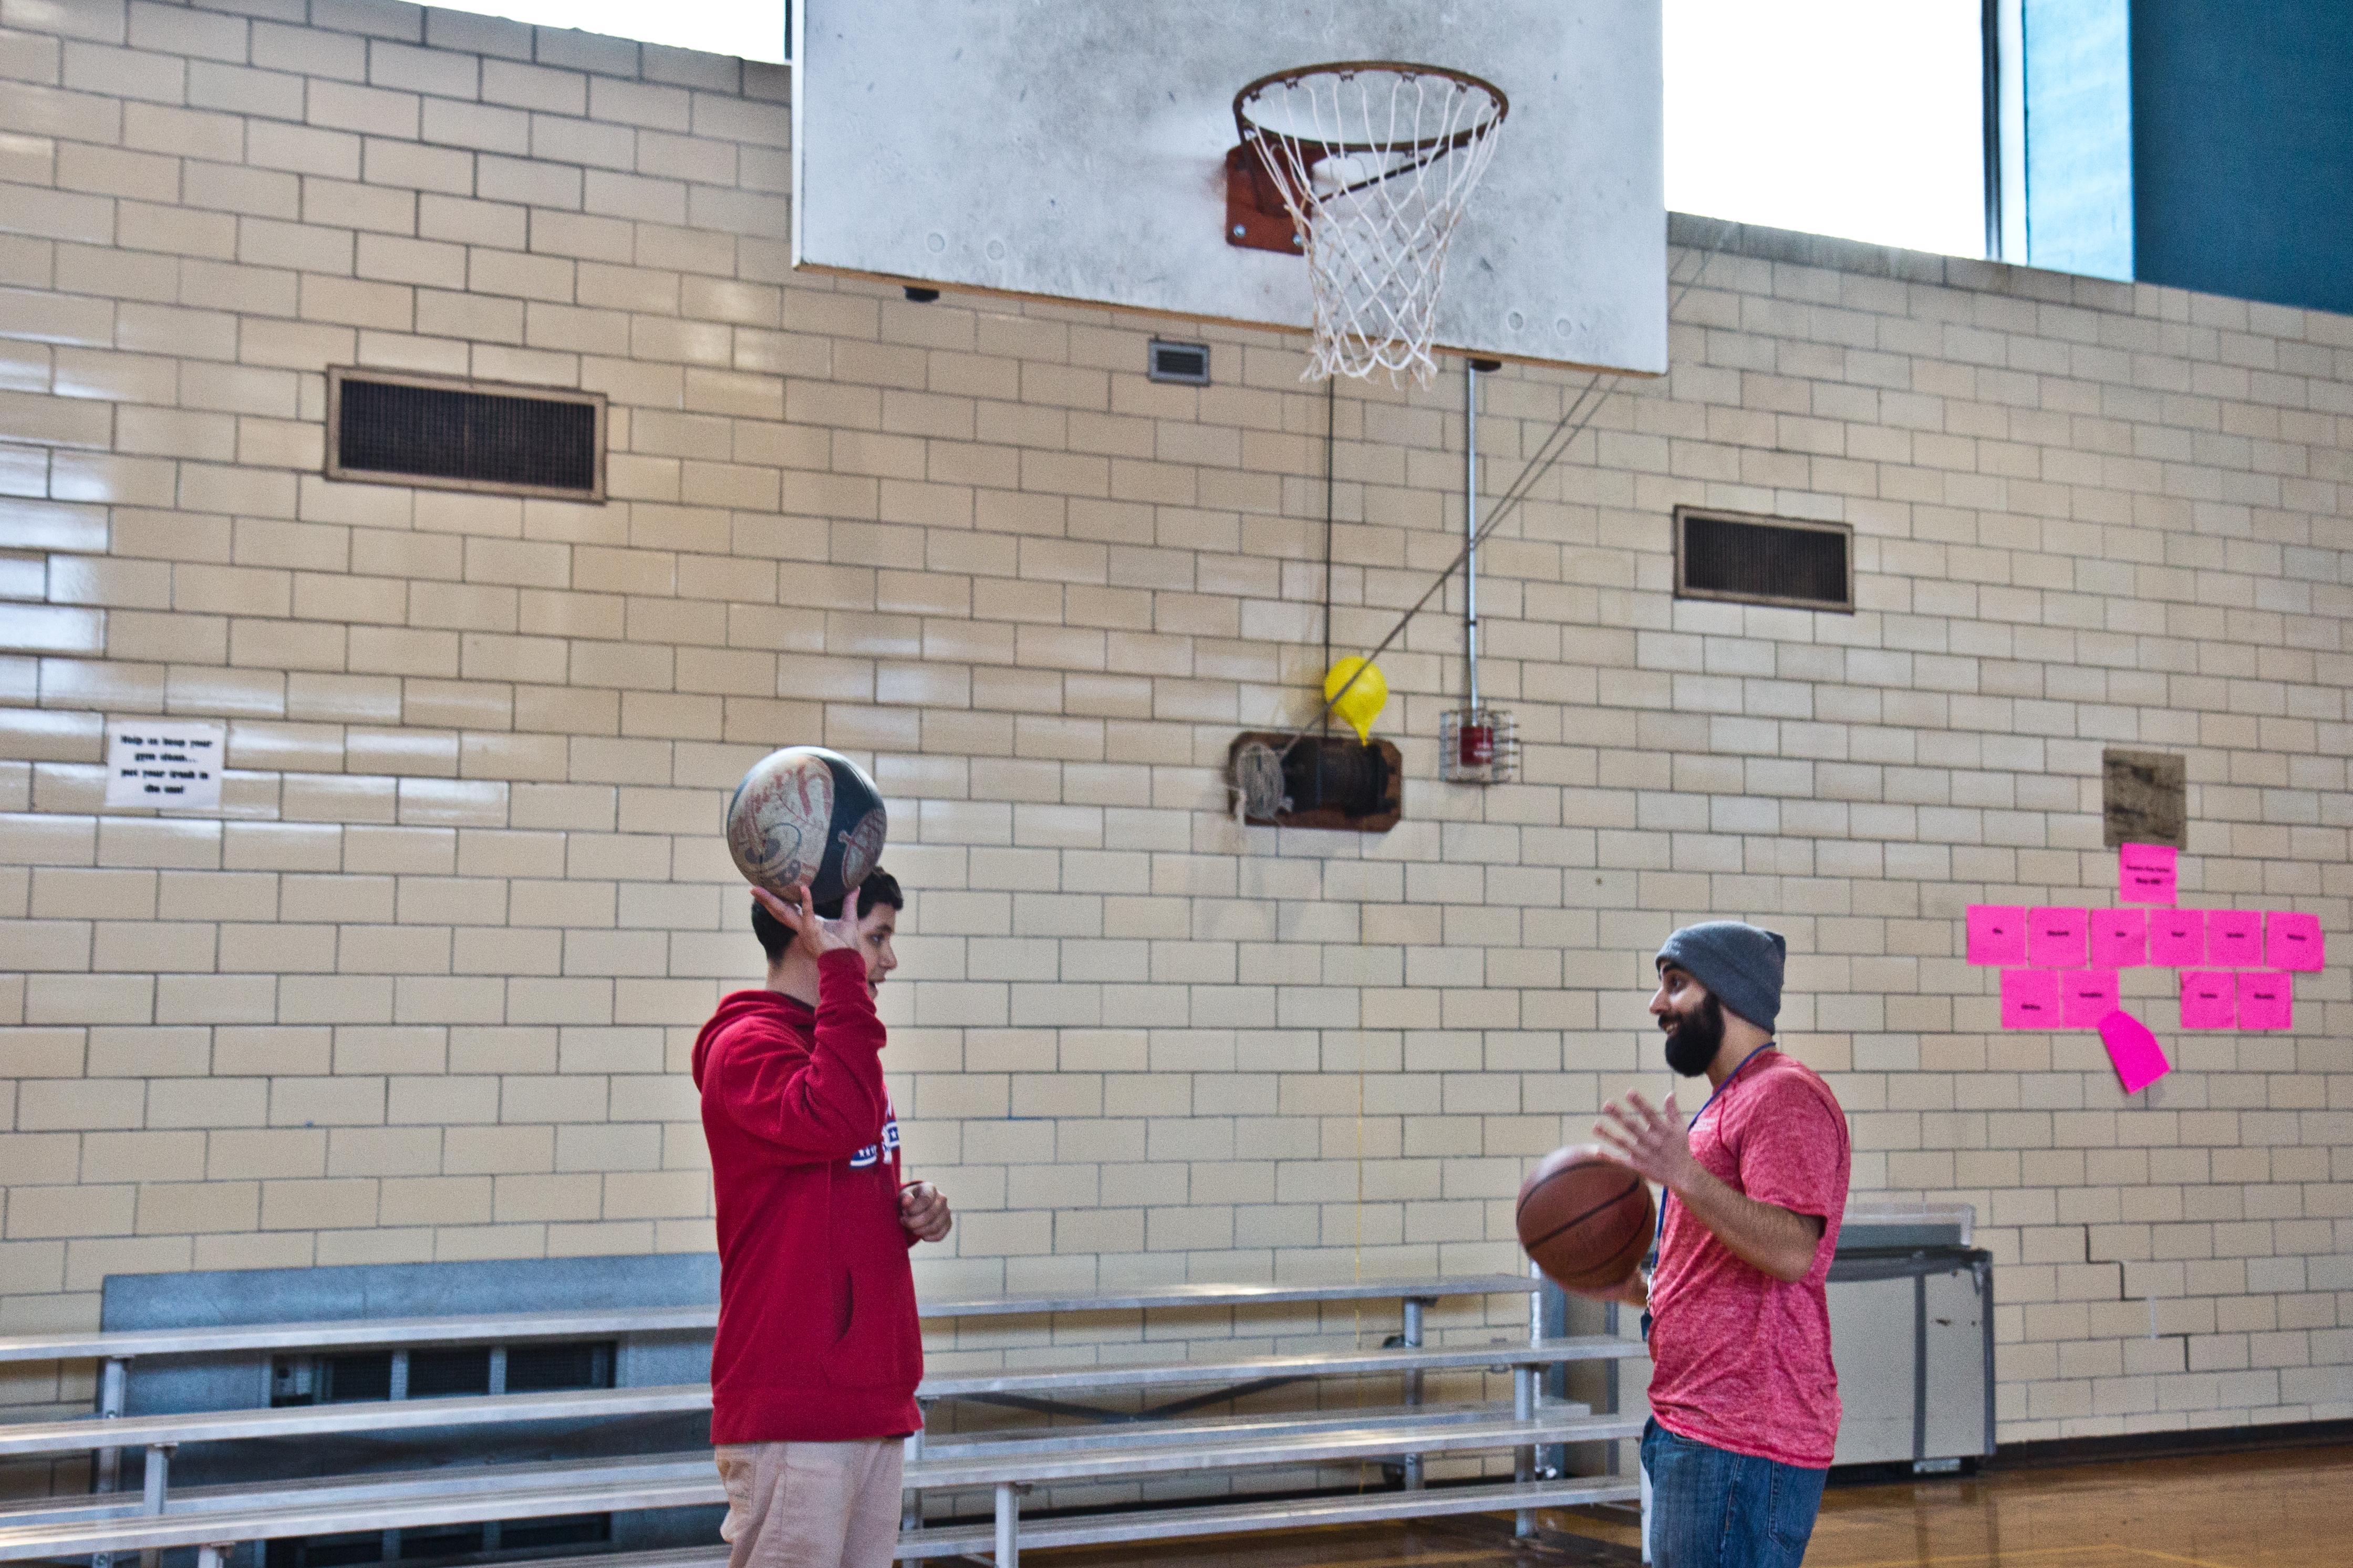 Julien Carrasquillo (right) is a 28-year-old leader trainee at Rivera Rec Center in Fairhill.